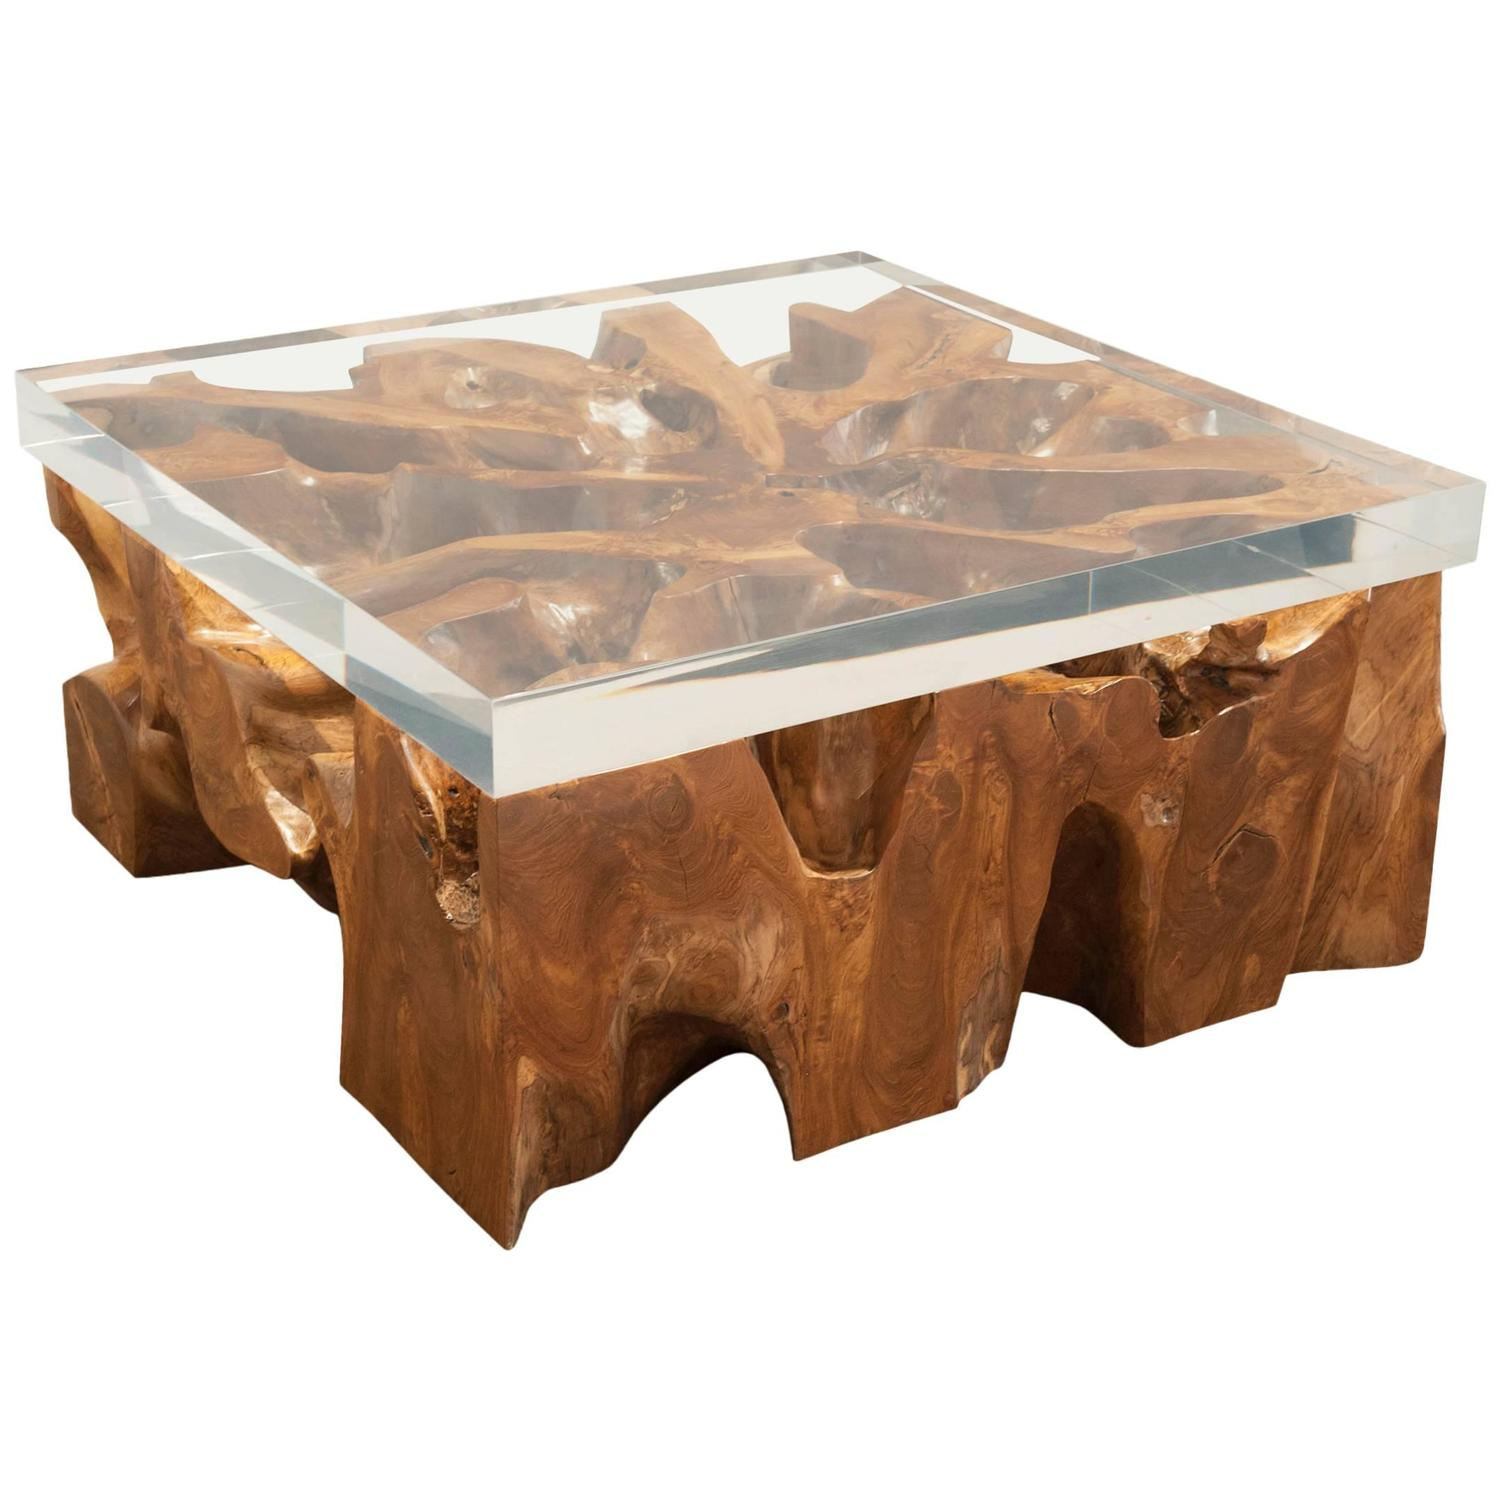 Large lucite and wood coffee table at 1stdibs One of a kind coffee tables